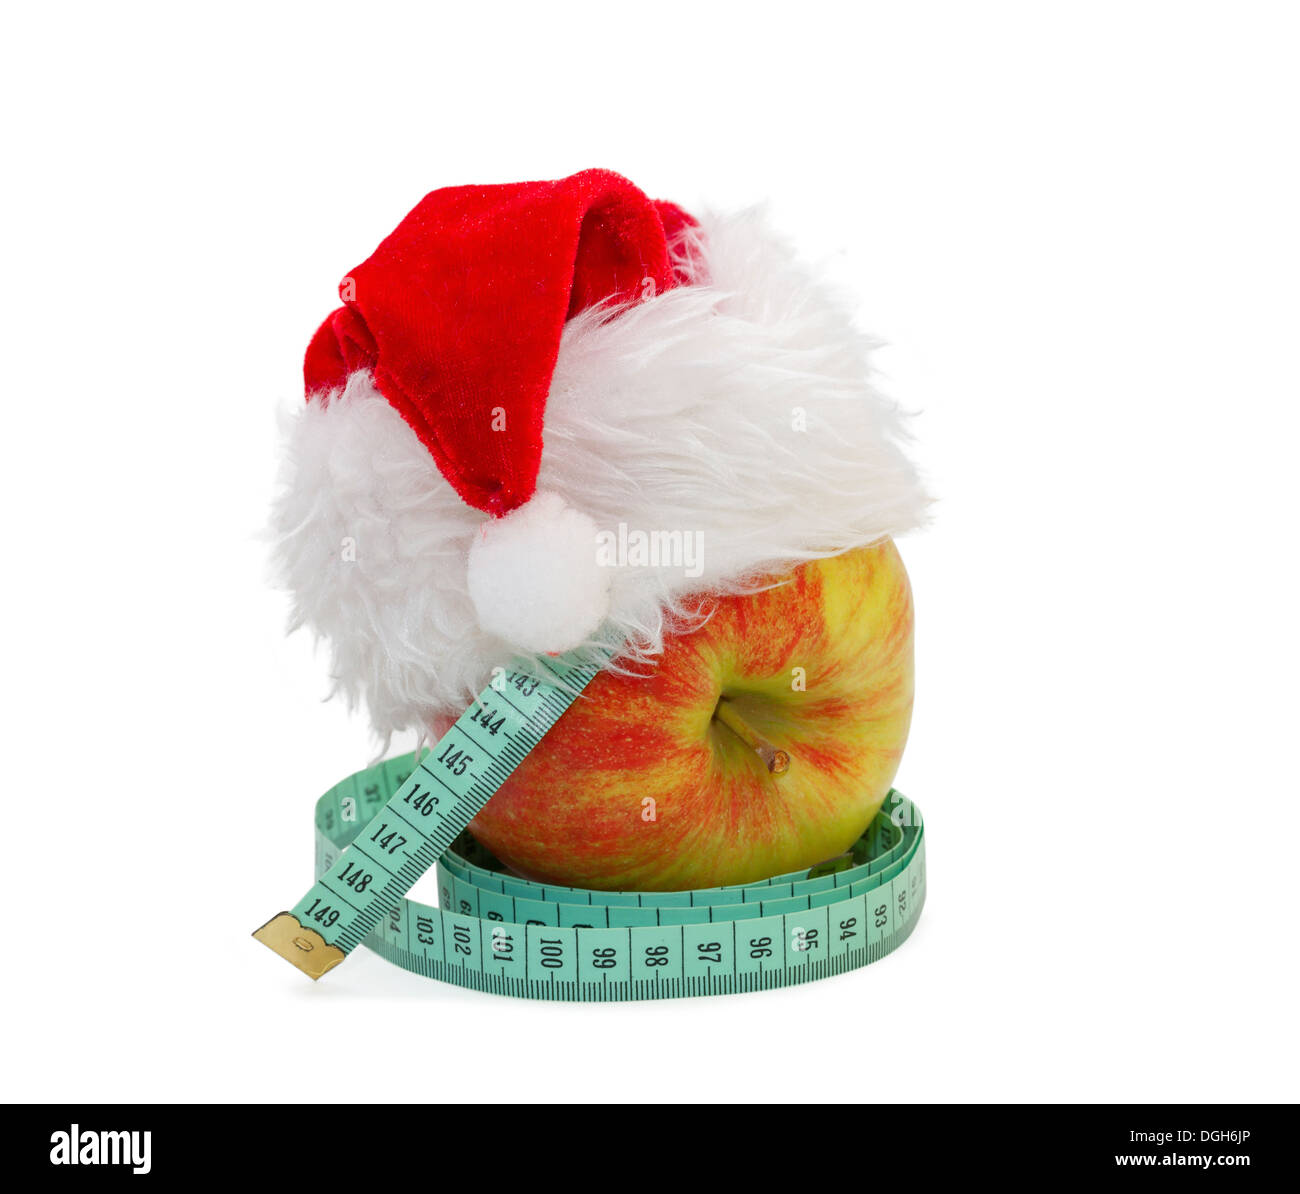 Apple with a measuring meter, in a cap Santa Claus - Stock Image